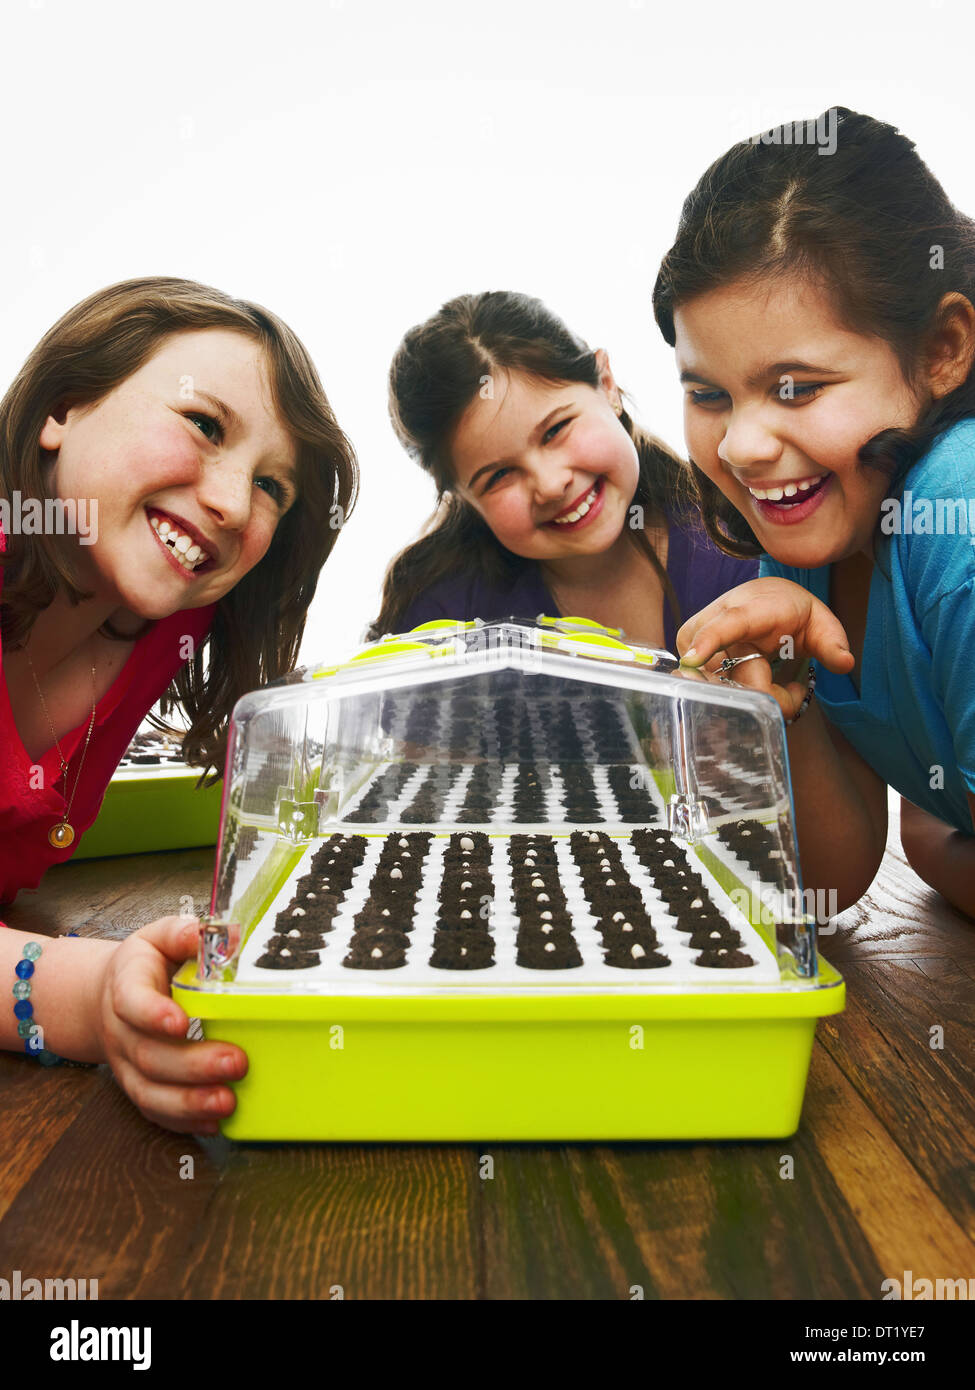 Three children leaning excitedly over a freshly planted seed tray with a cover on a table - Stock Image